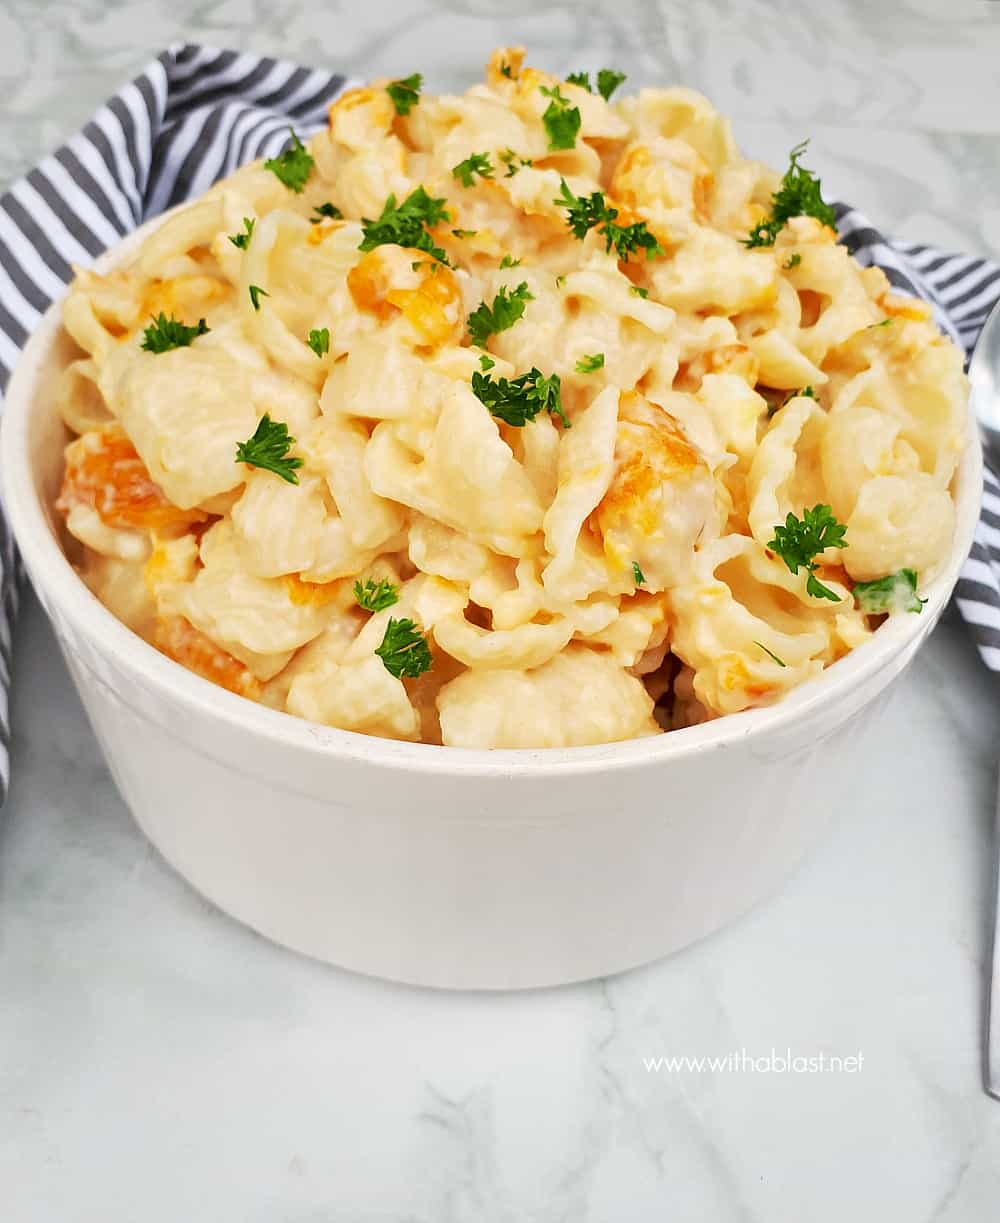 This Cheesy Haddock Pasta is a delicious comforting dish, pasta and fish hugged in a creamy cheese sauce and ready in under 30 minutes !